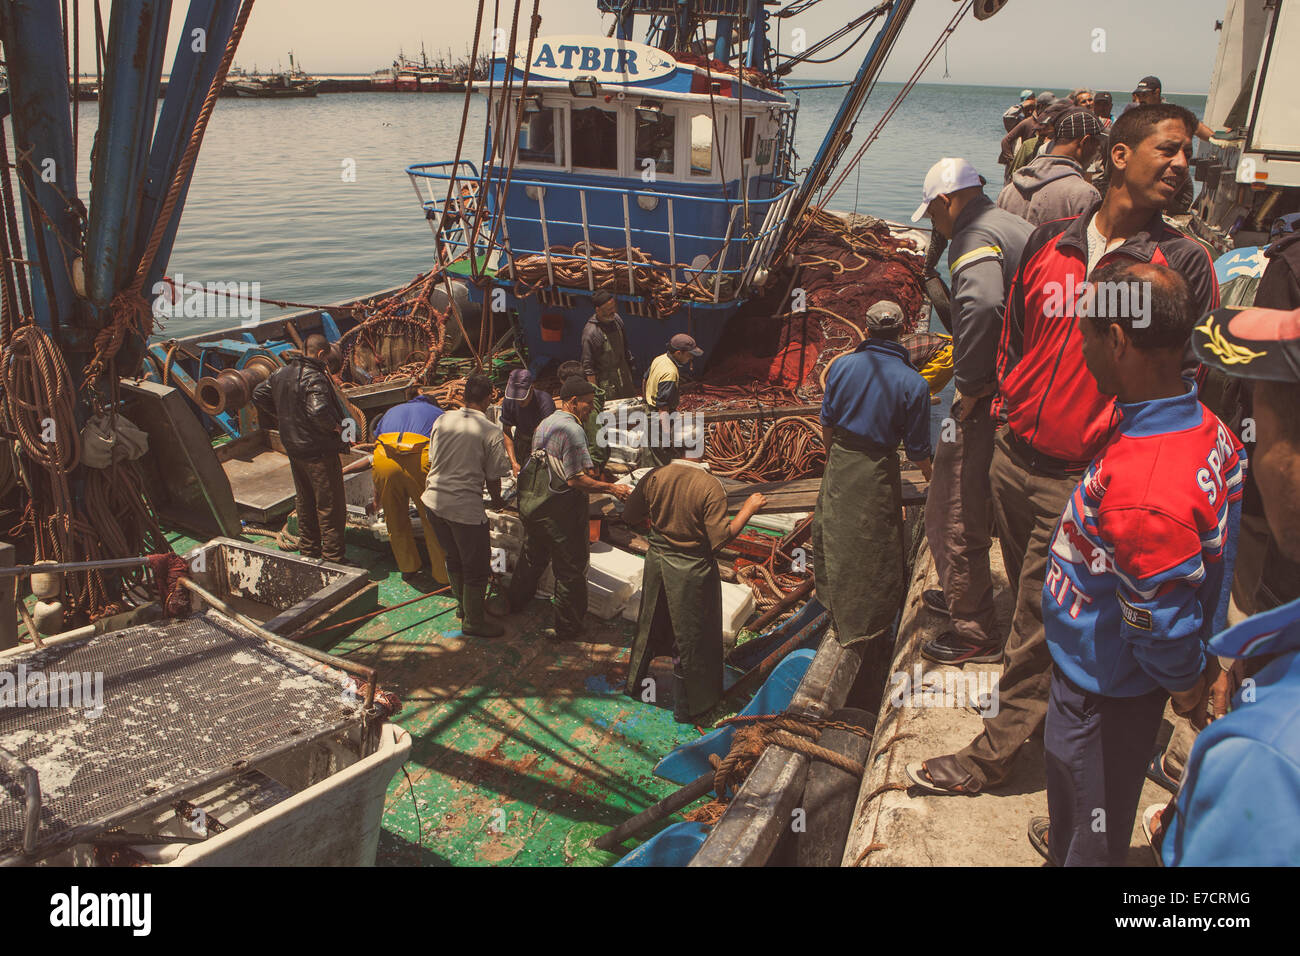 Daklha, Morocco, June 21, 2014: Daily Fish market in Daklha, Western Sahara, Morocco, were fresh seafood is sold - Stock Image